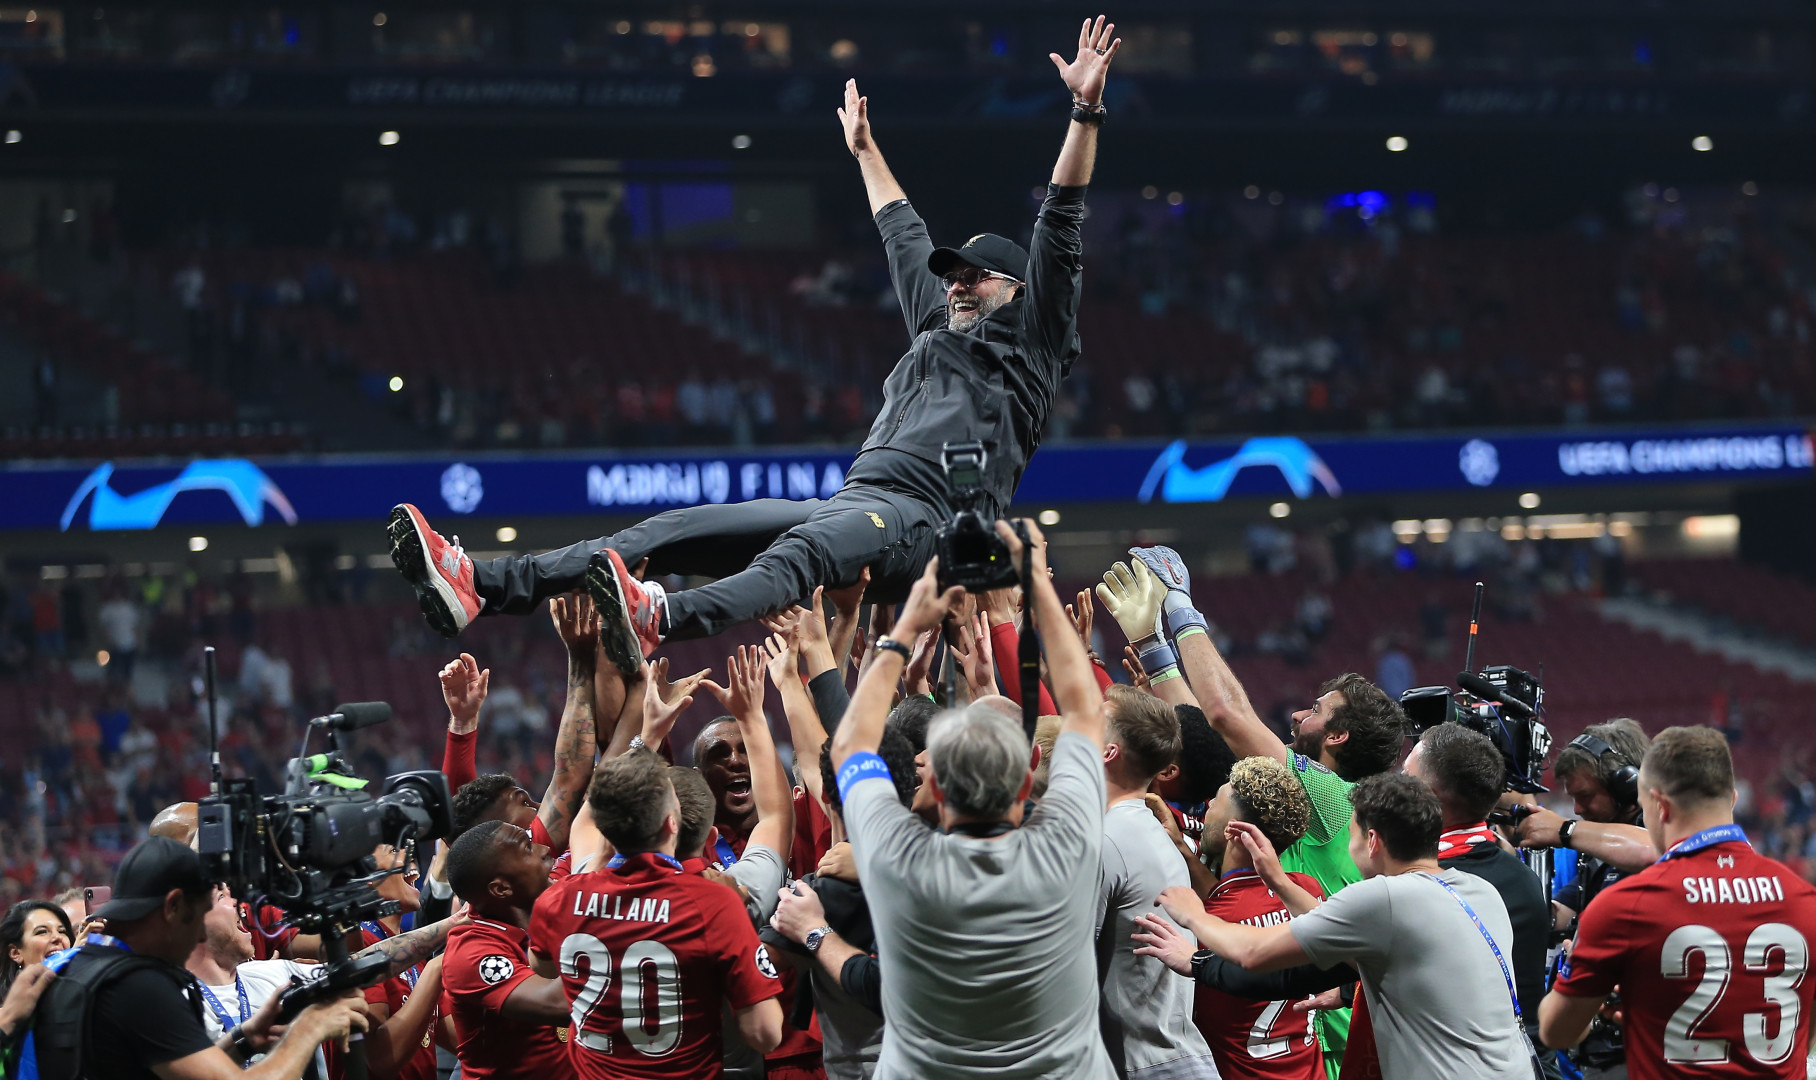 Liverpool Manager Jurgen Klopp is tossed in the air by his players after winning the Champions league (optimized)